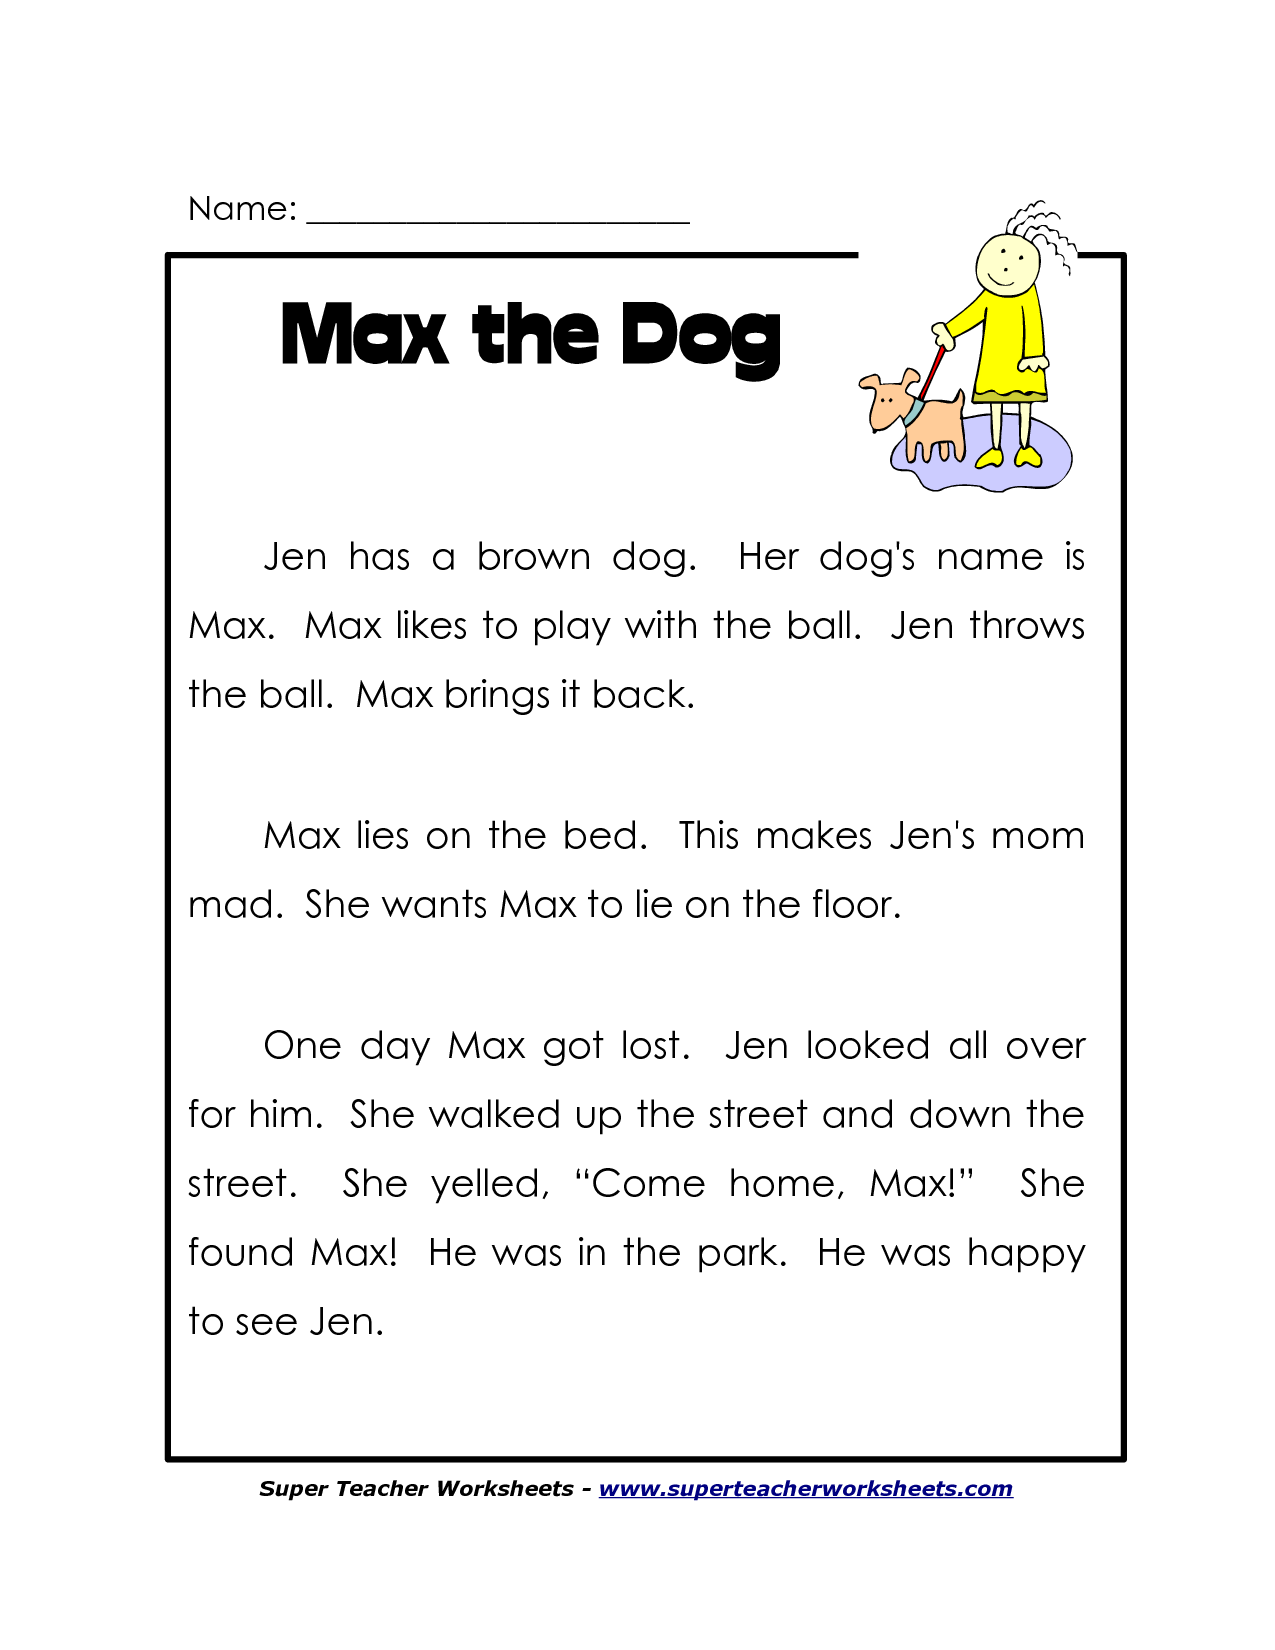 Worksheet Printable Reading Worksheets For 1st Grade 1st grade reading printable worksheets pichaglobal comprehension and children on pinterest printables